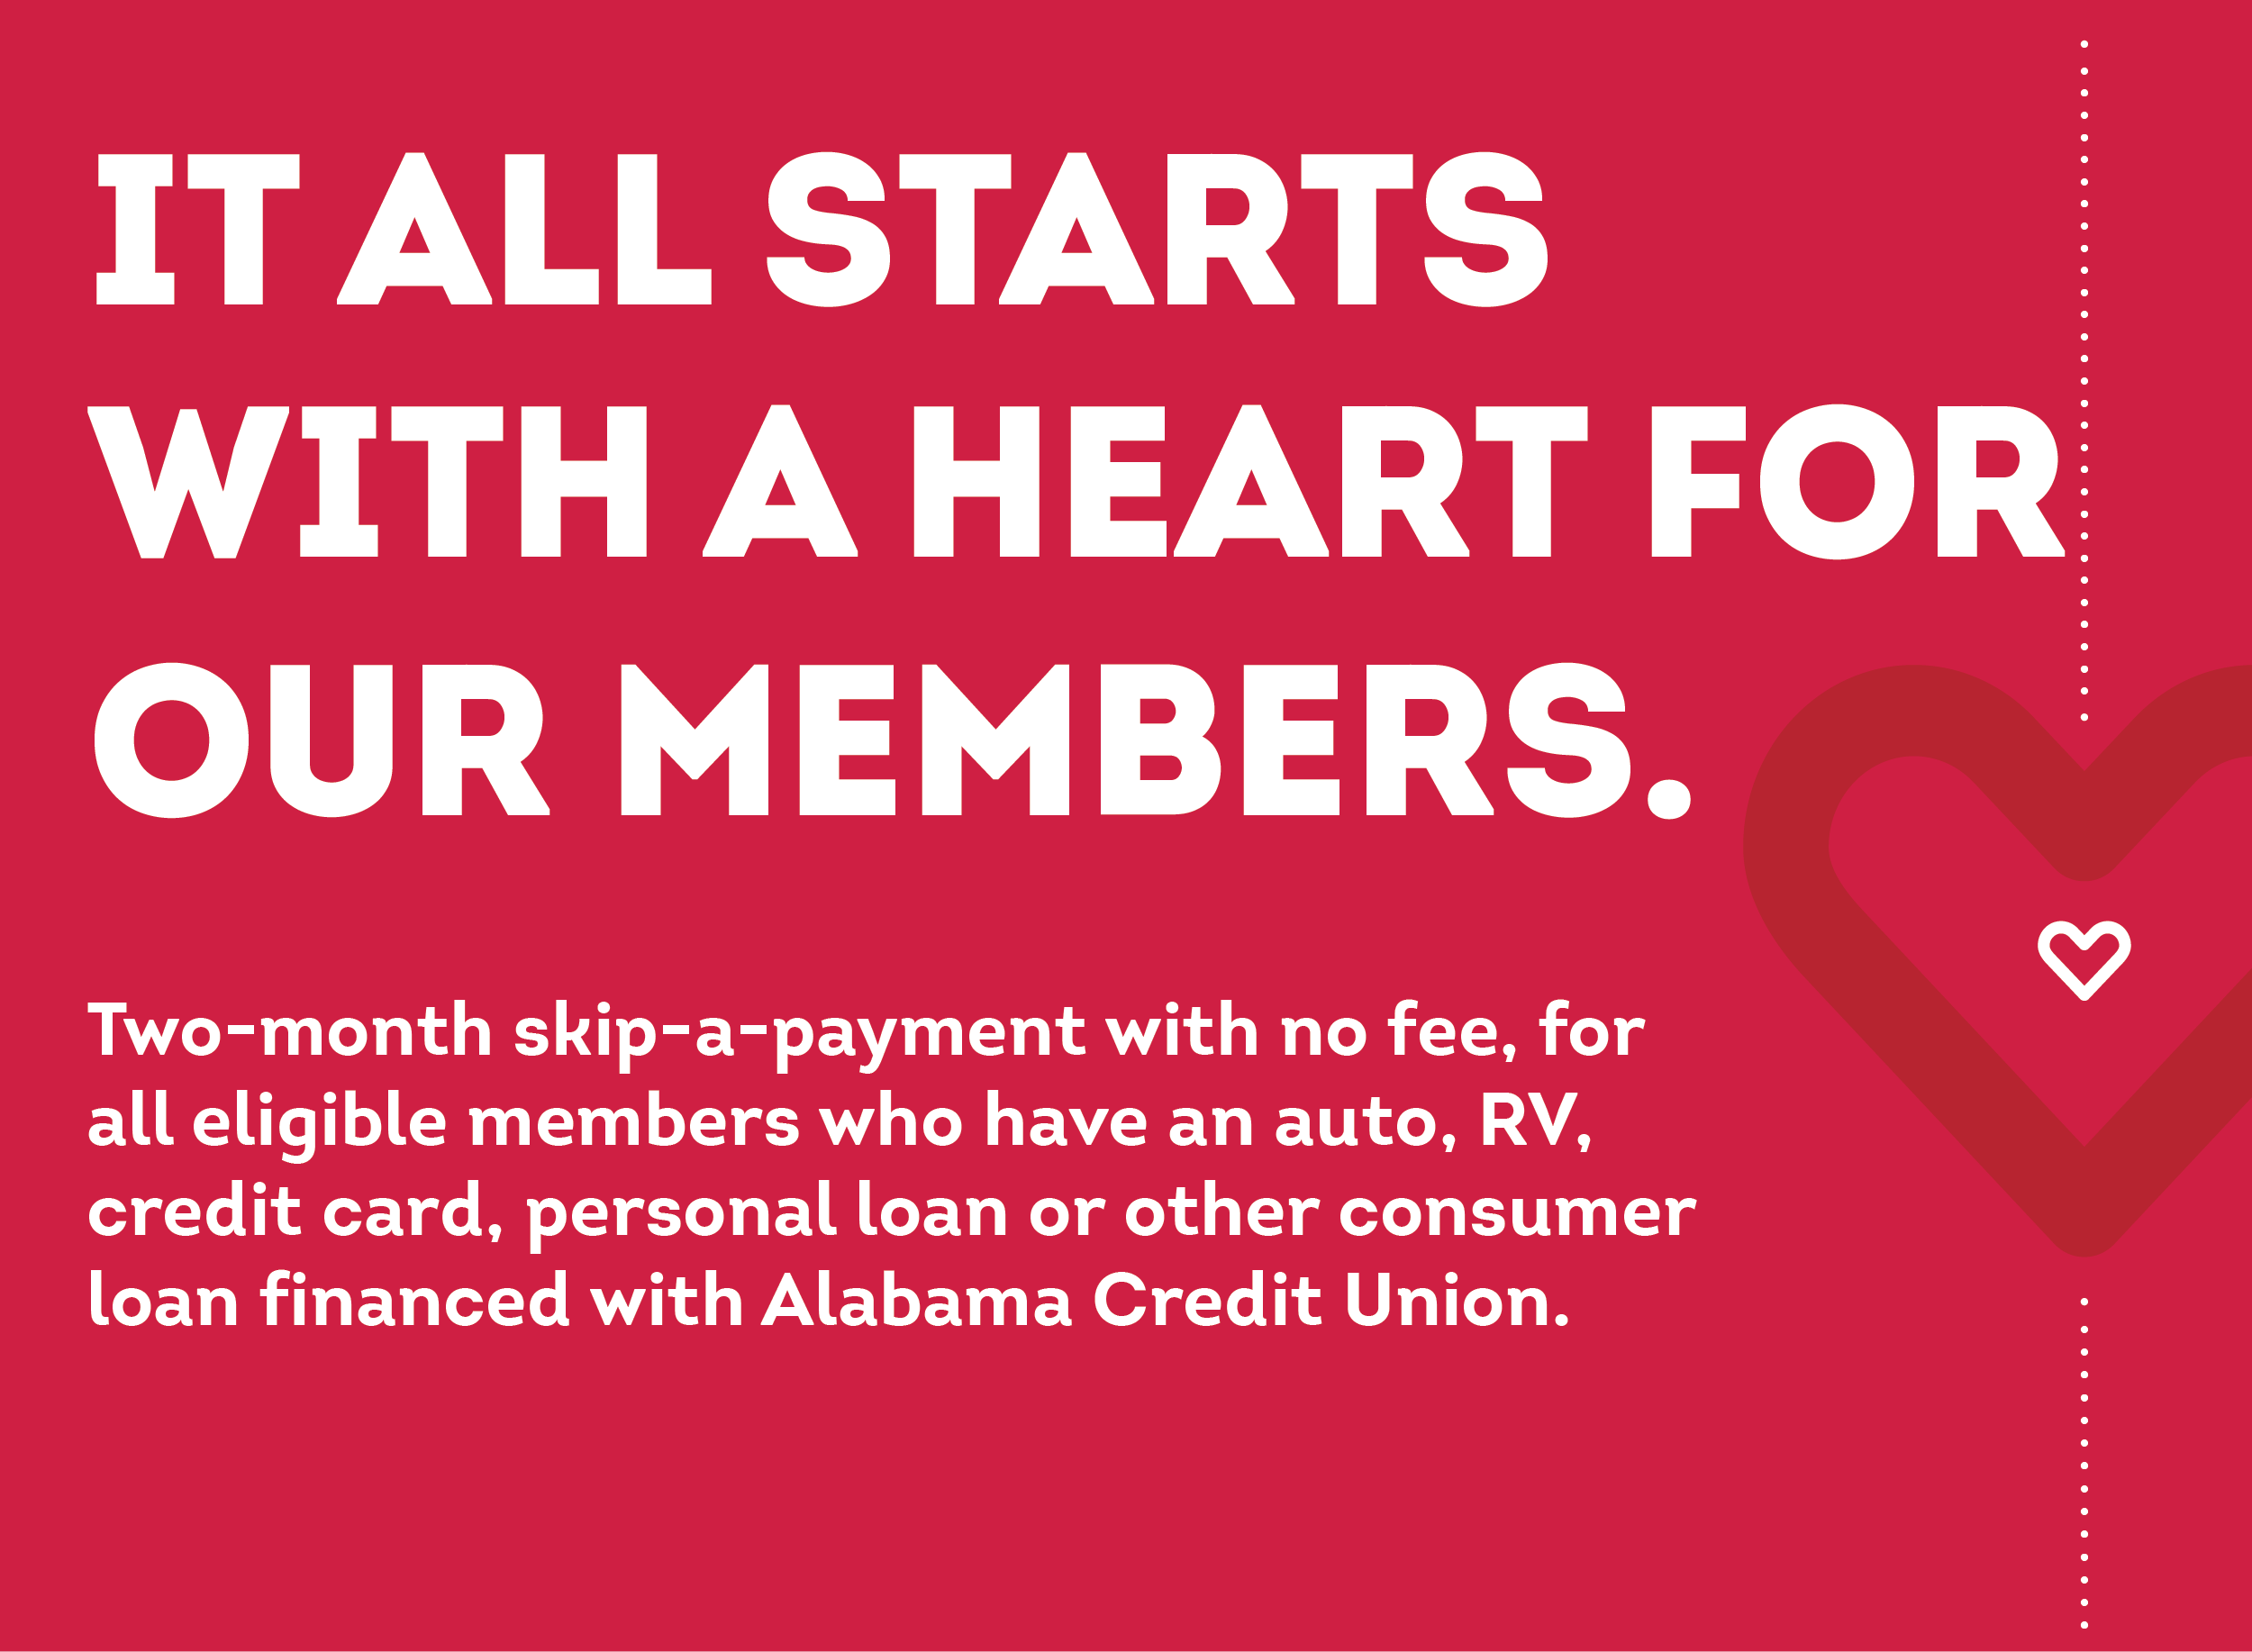 Alabama Credit Union Relief Program (COVID-19)